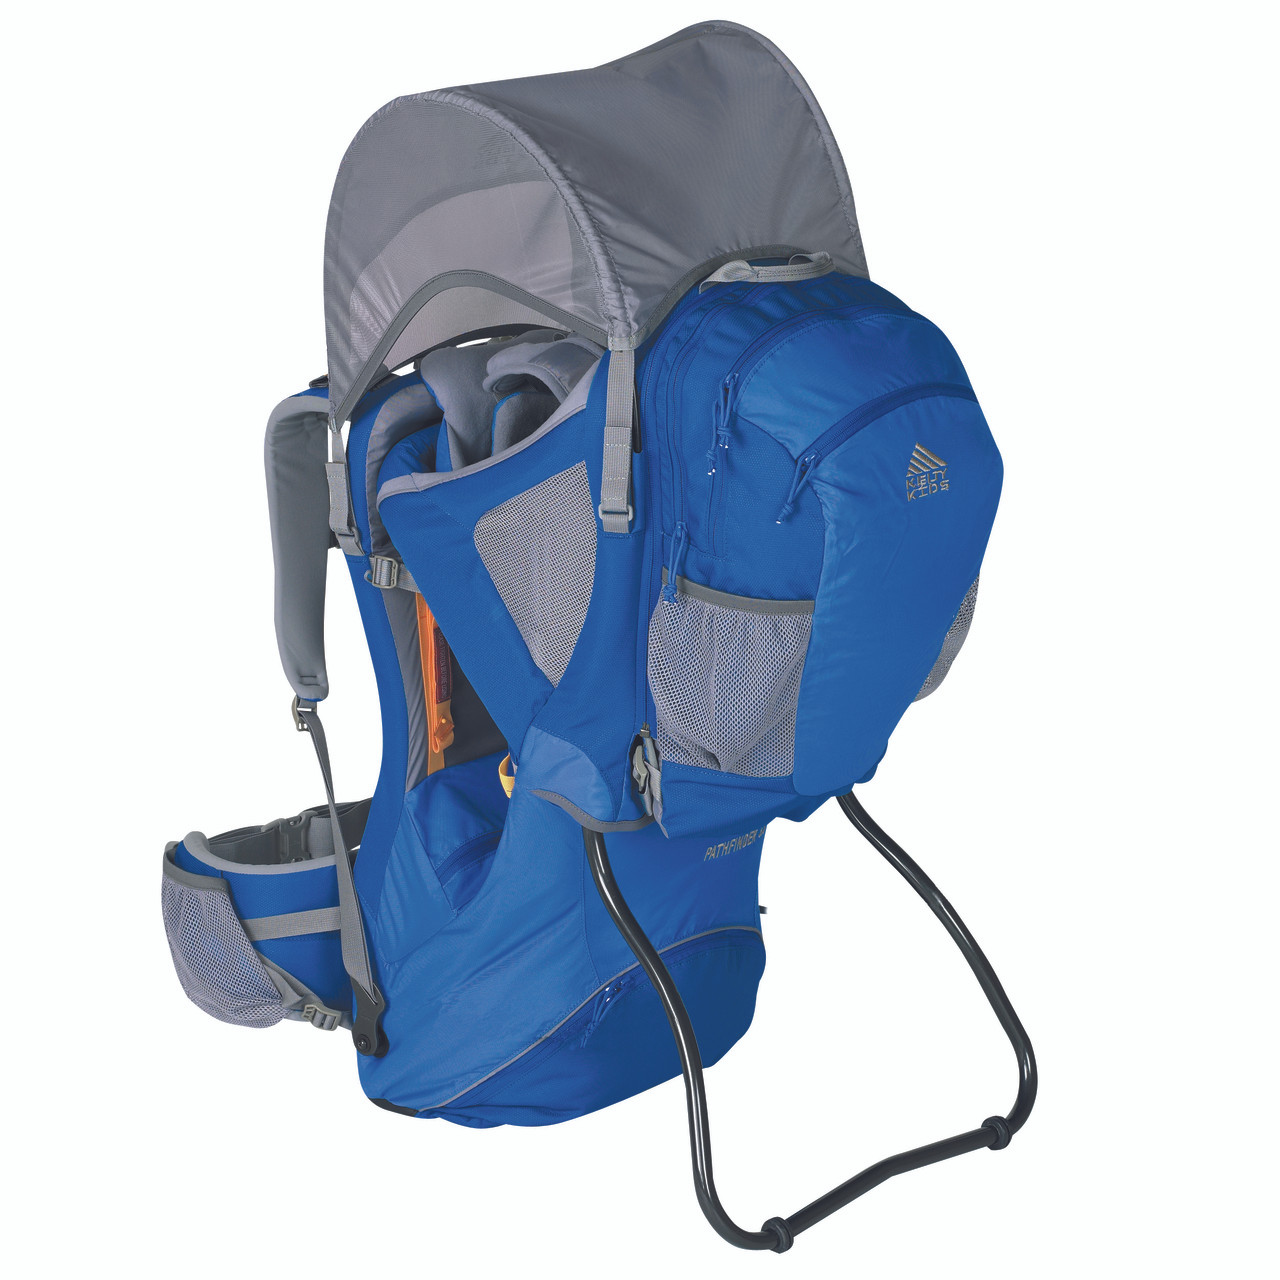 Pathfinder 3.0 Child Carrier Backpack | Kelty